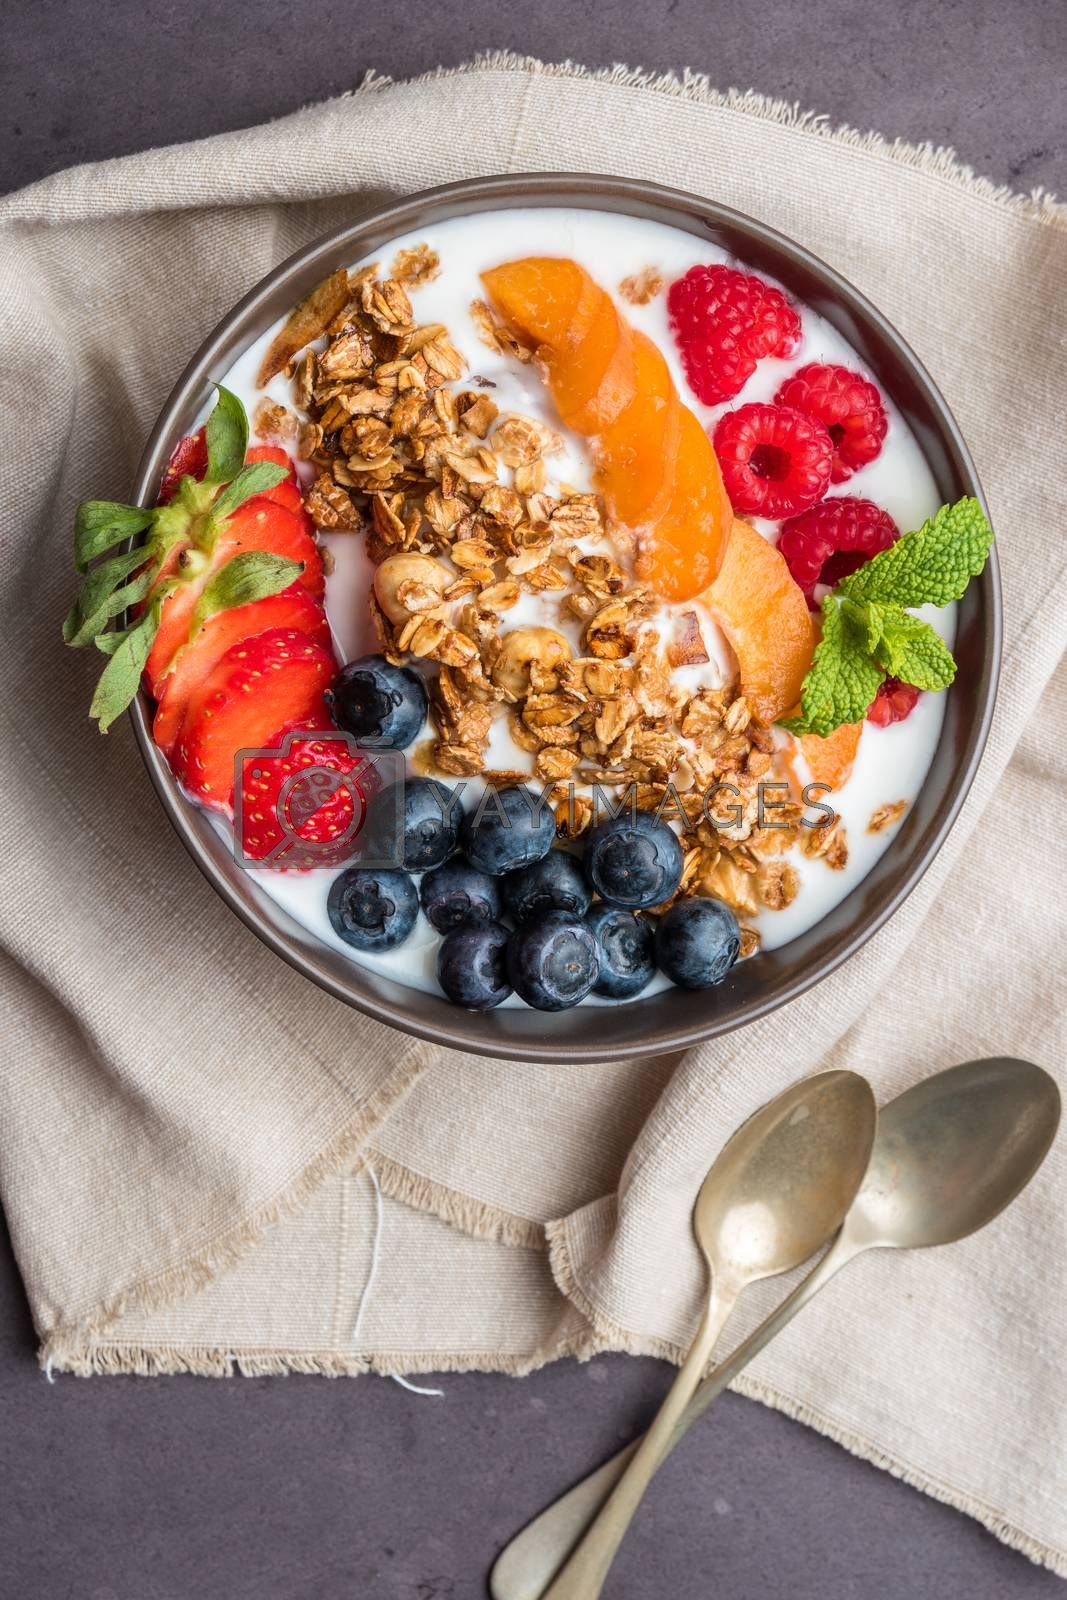 Yogurt with baked granola and berries in small bowl strawberries blueberries. Granola baked with nuts and honey for little sweetness.